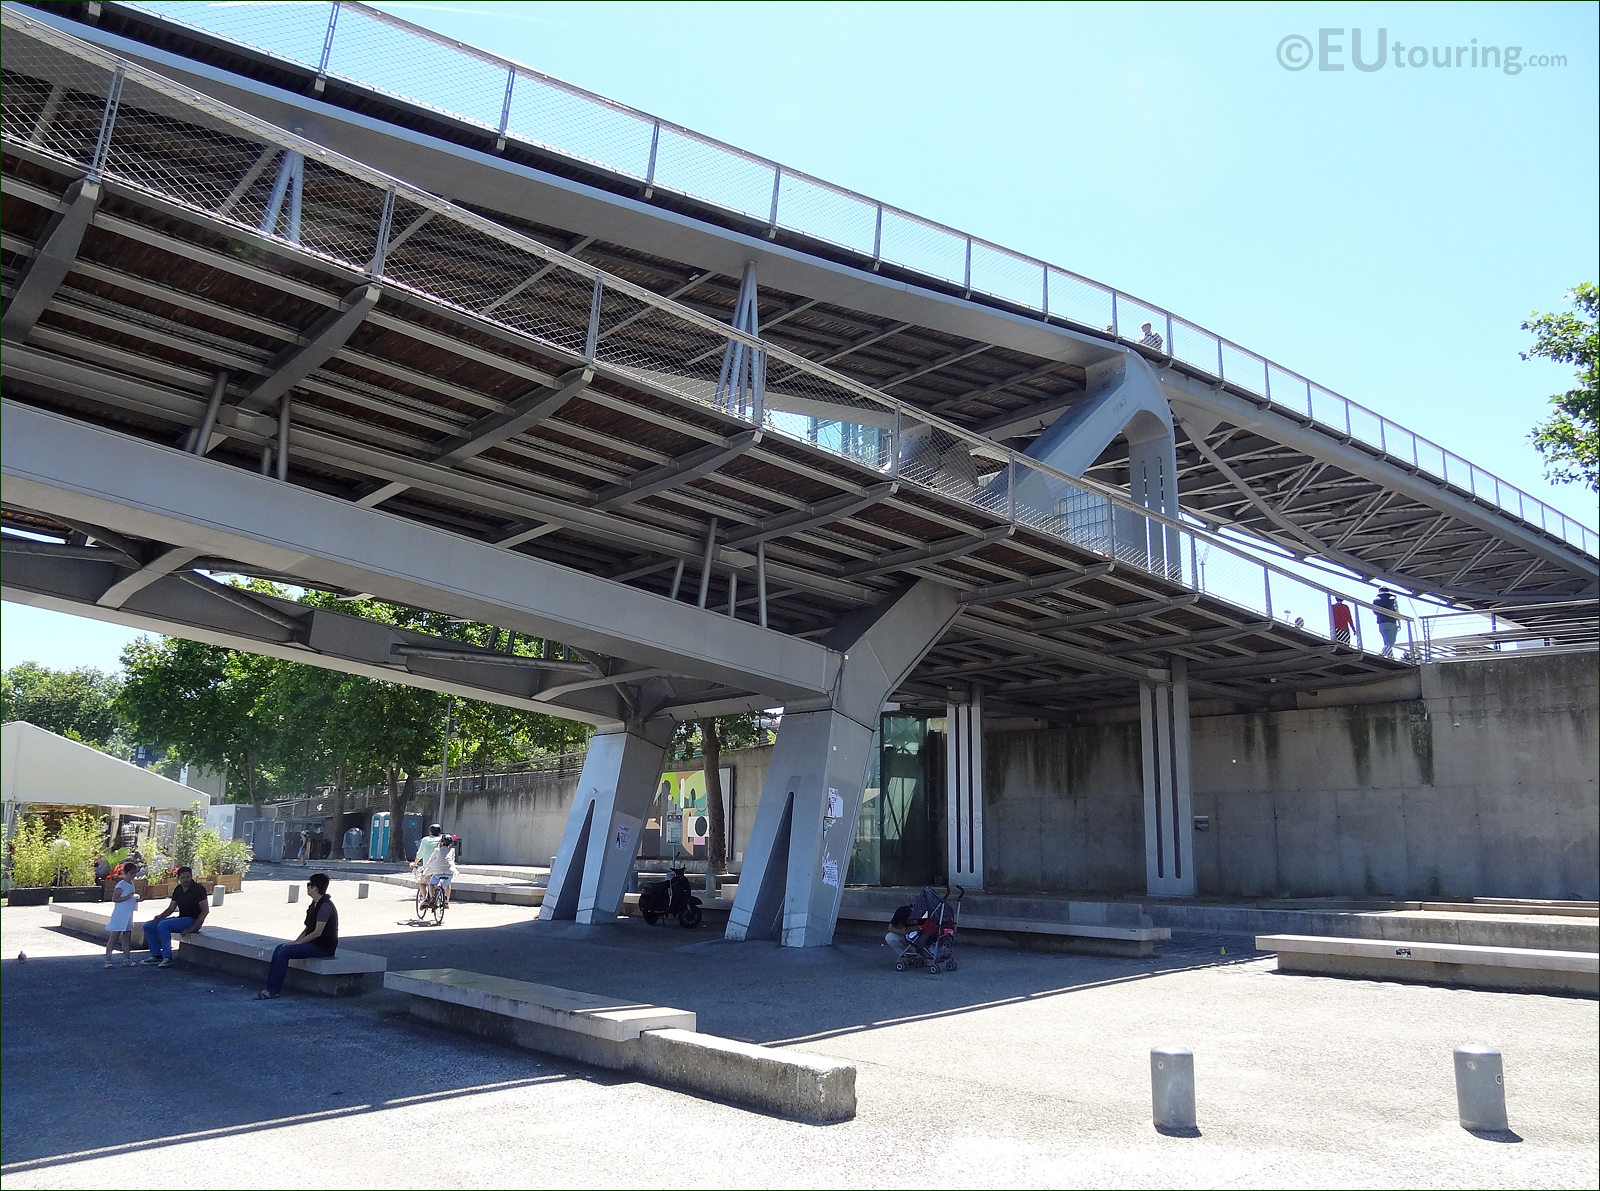 Hd photographs of passerelle simone de beauvoir bridge paris for Passerelle definition